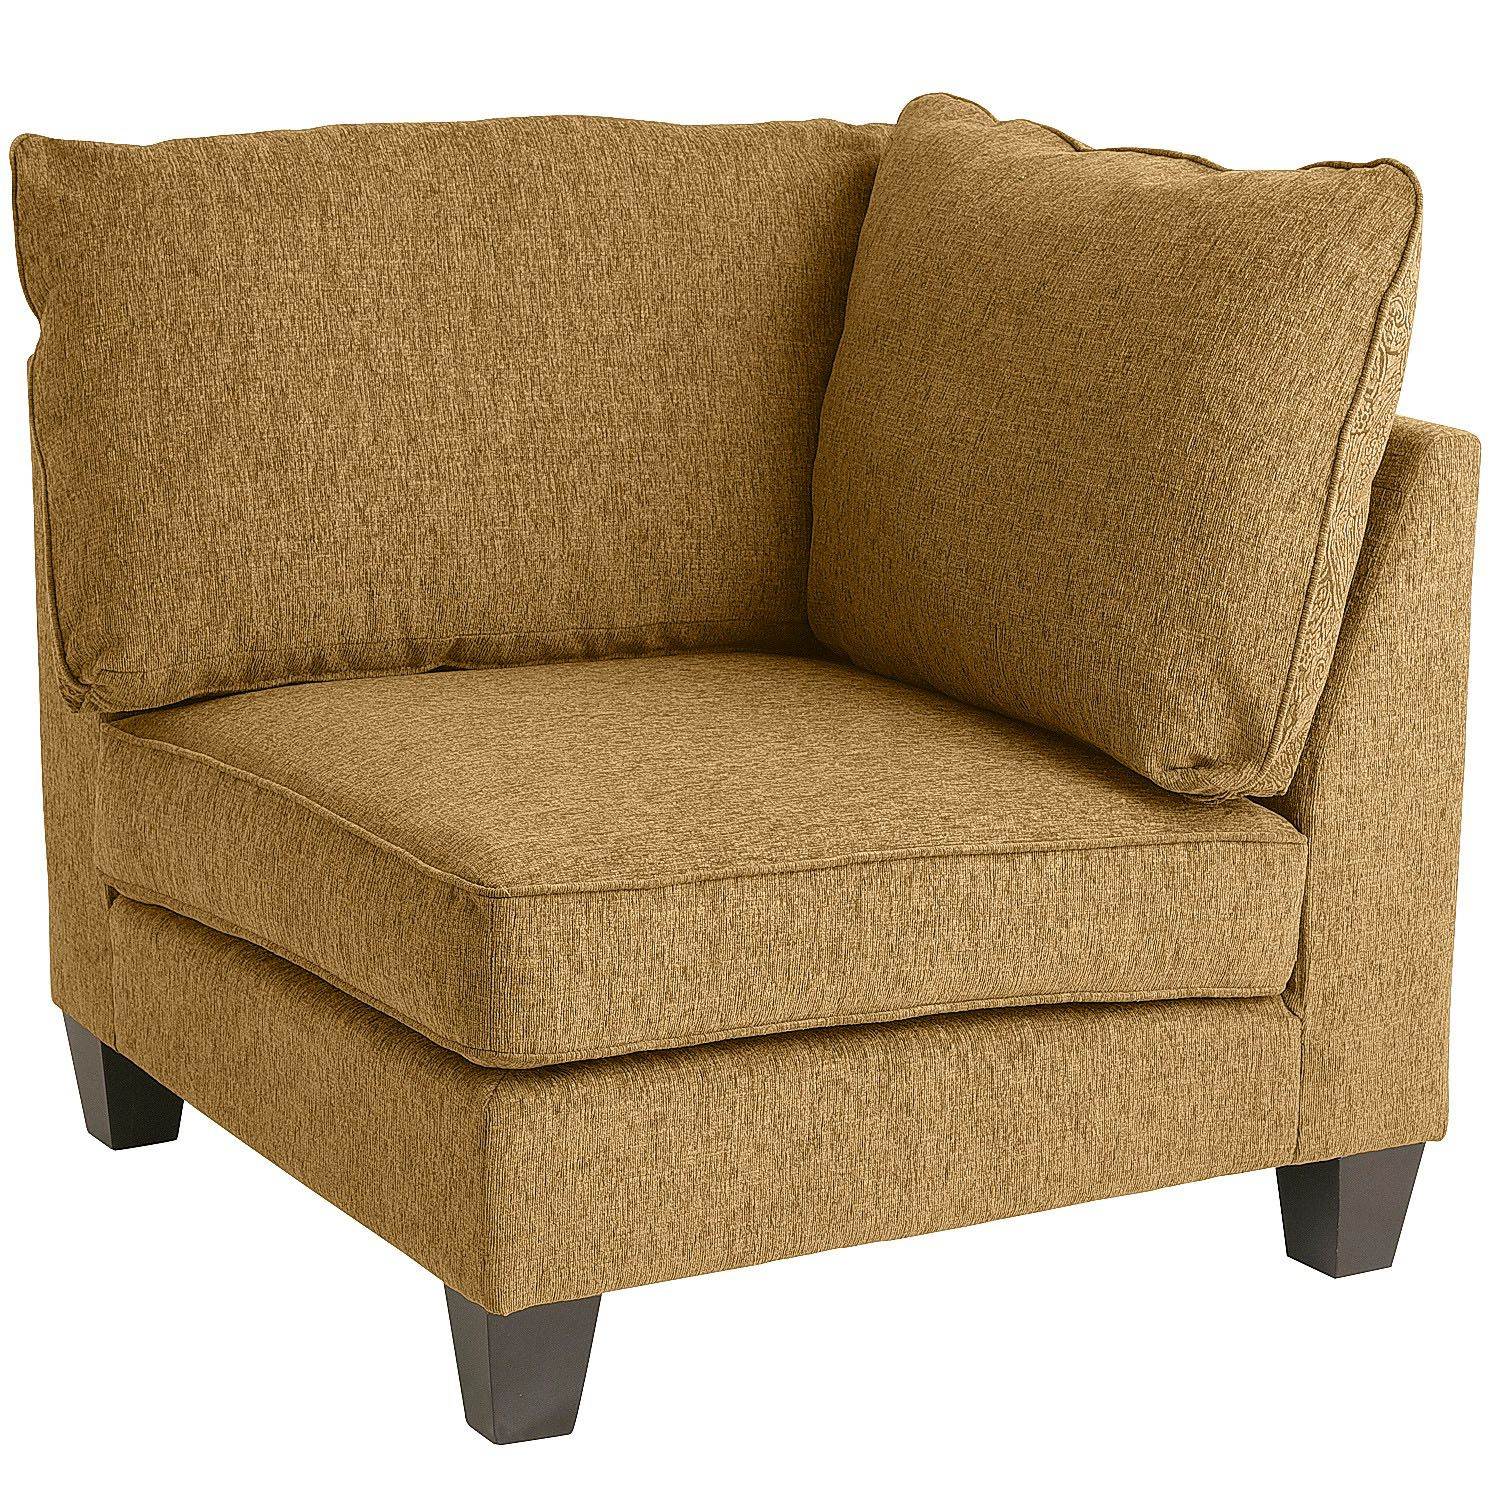 Polyester Crandall Corner Chair Furniture Chairs